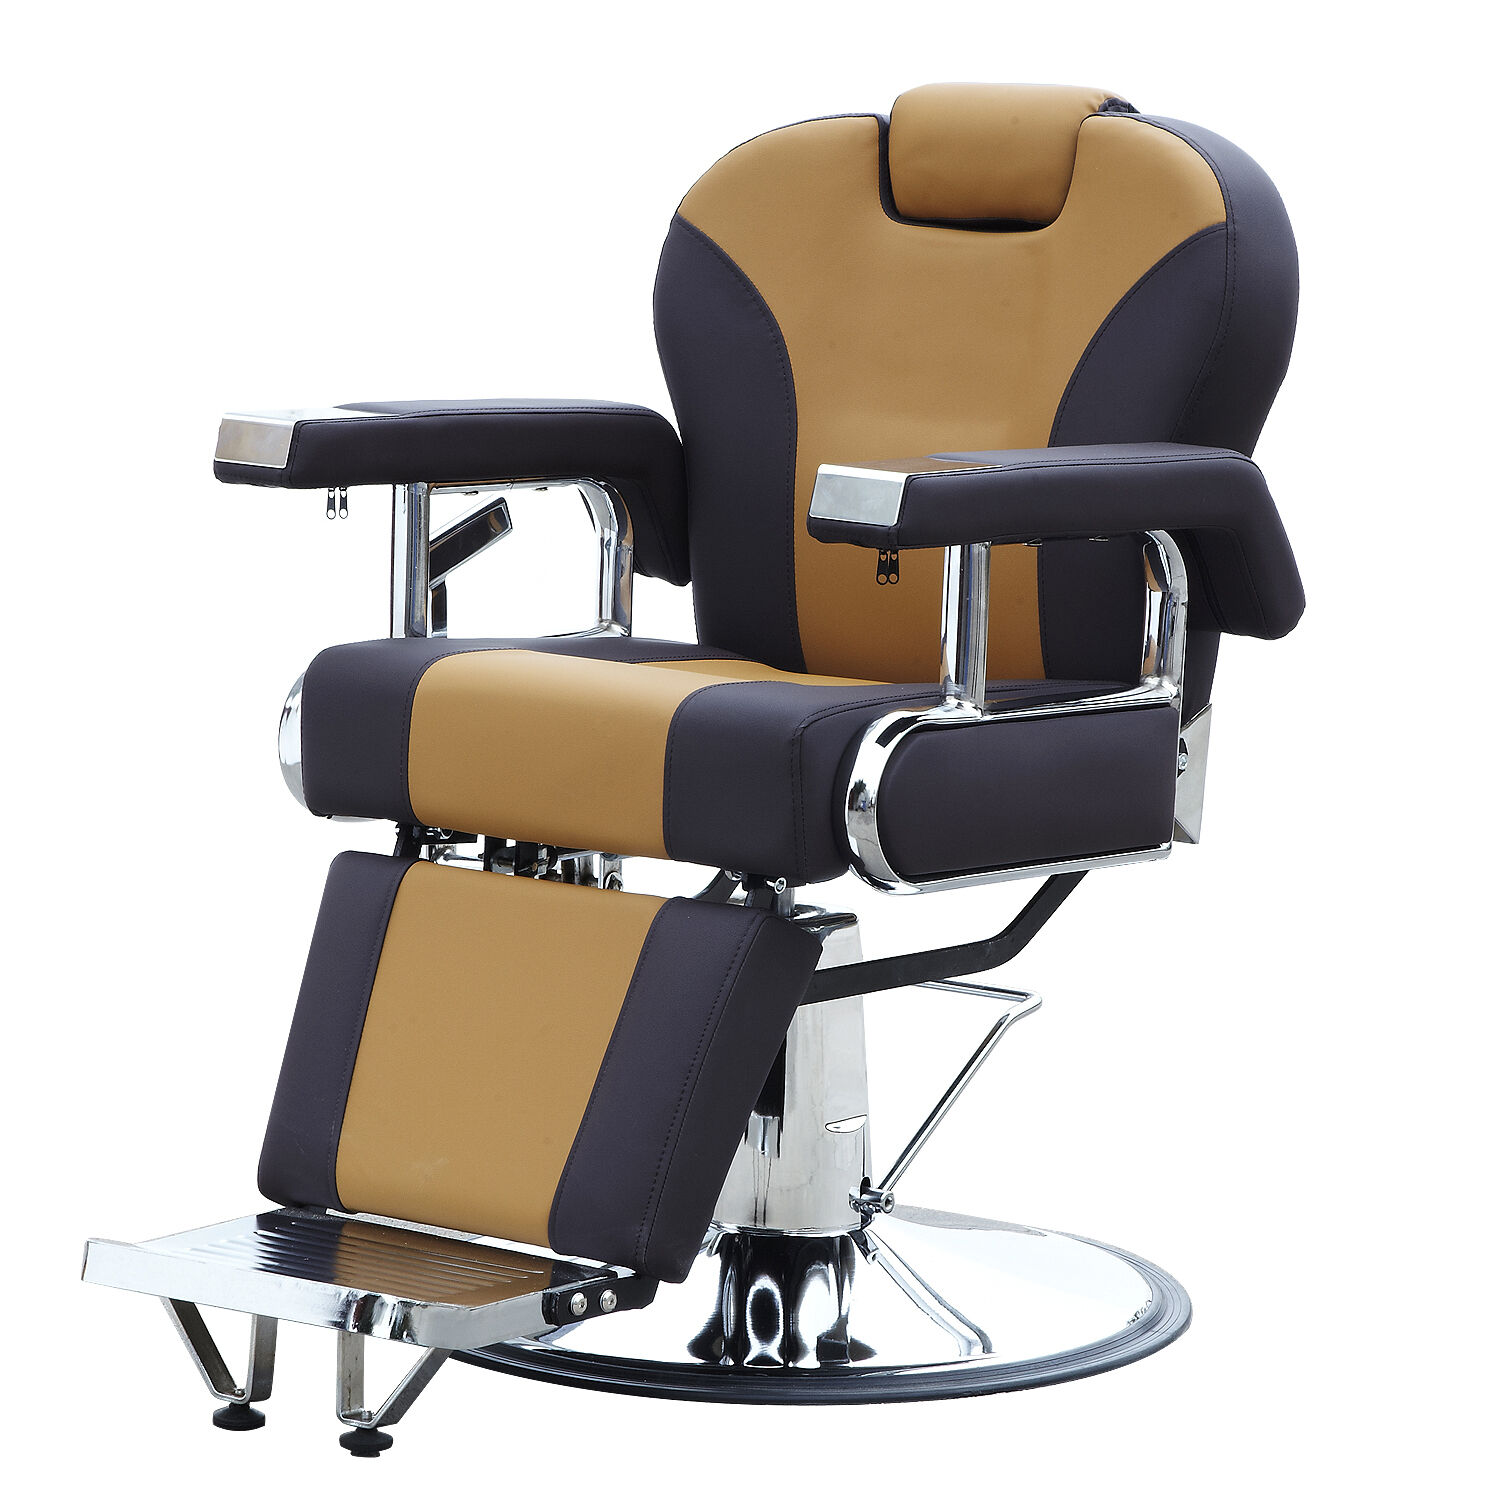 Reclining Hydraulic Barber Chair Salon Styling Beauty Spa Shampoo Equipment New